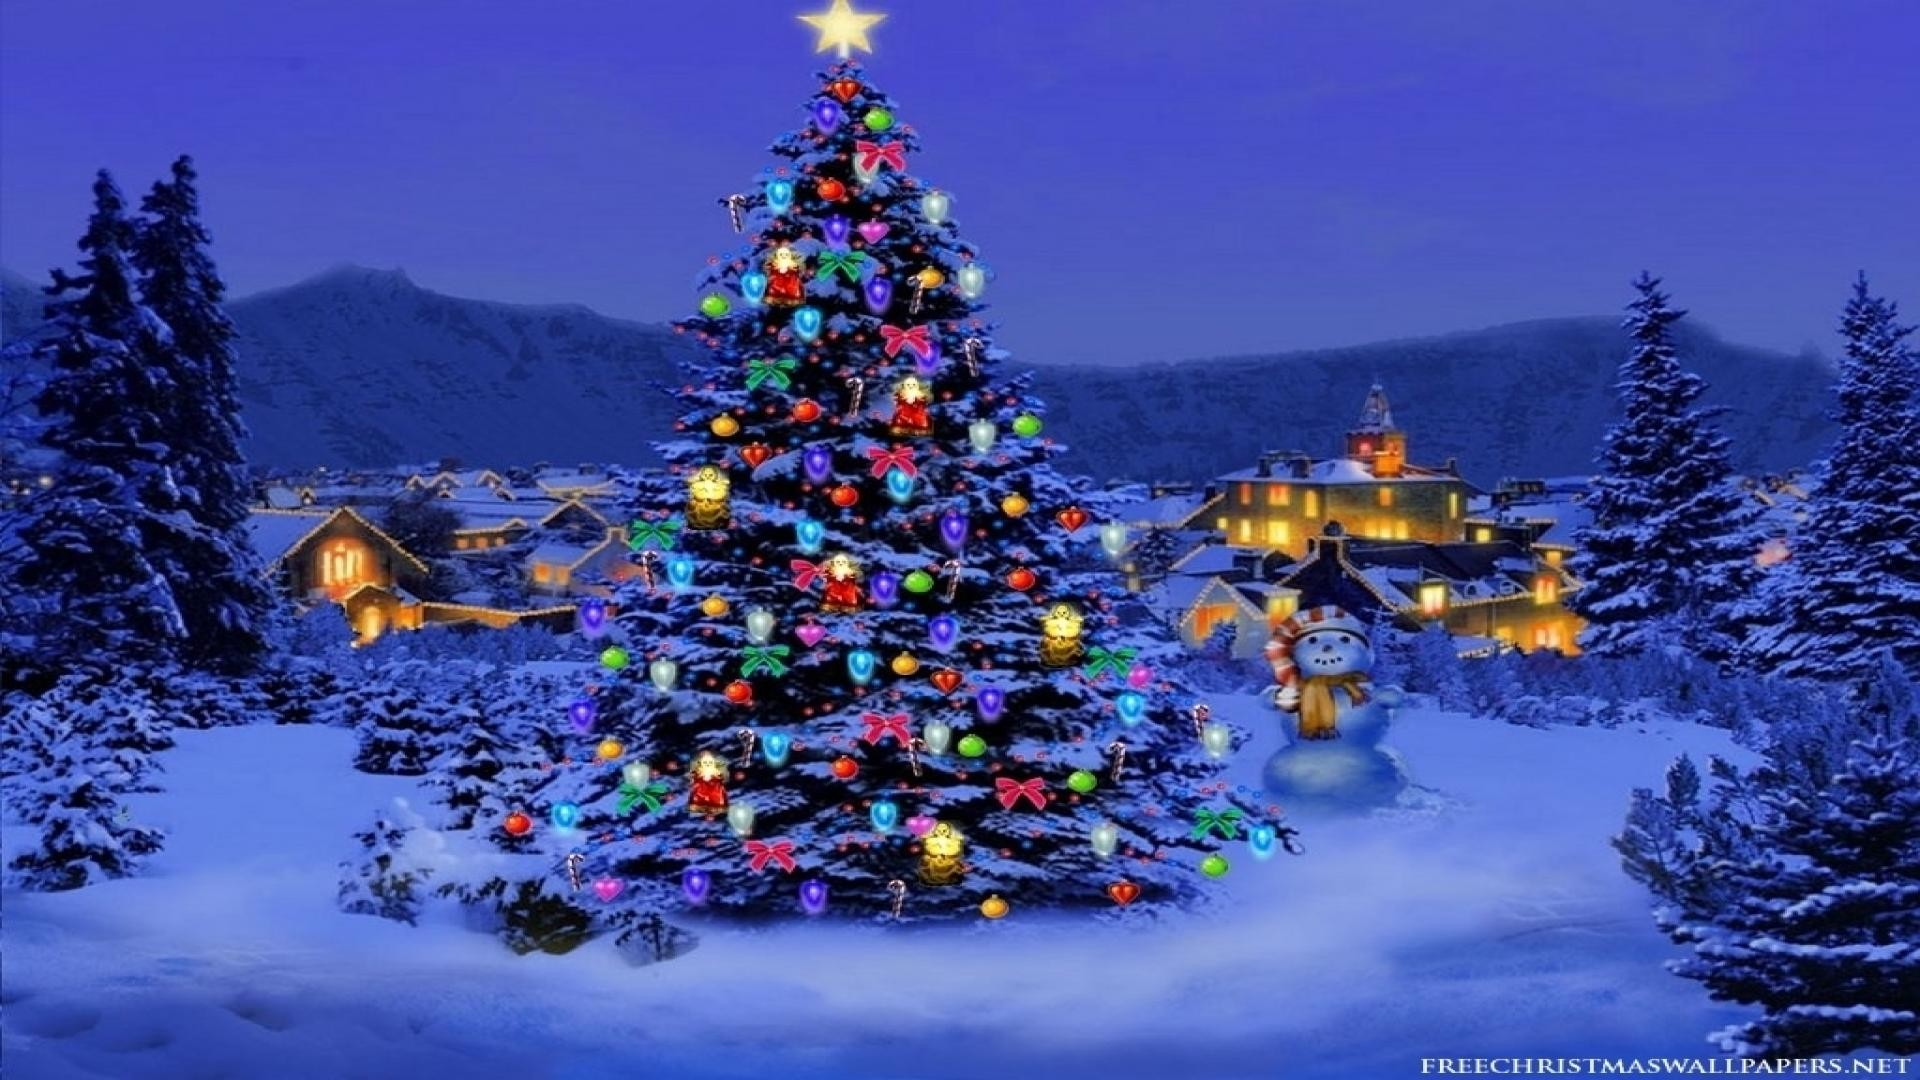 Hd Christmas Wallpaper.Christmas Wallpapers For Desktop 1920x1080 64 Images